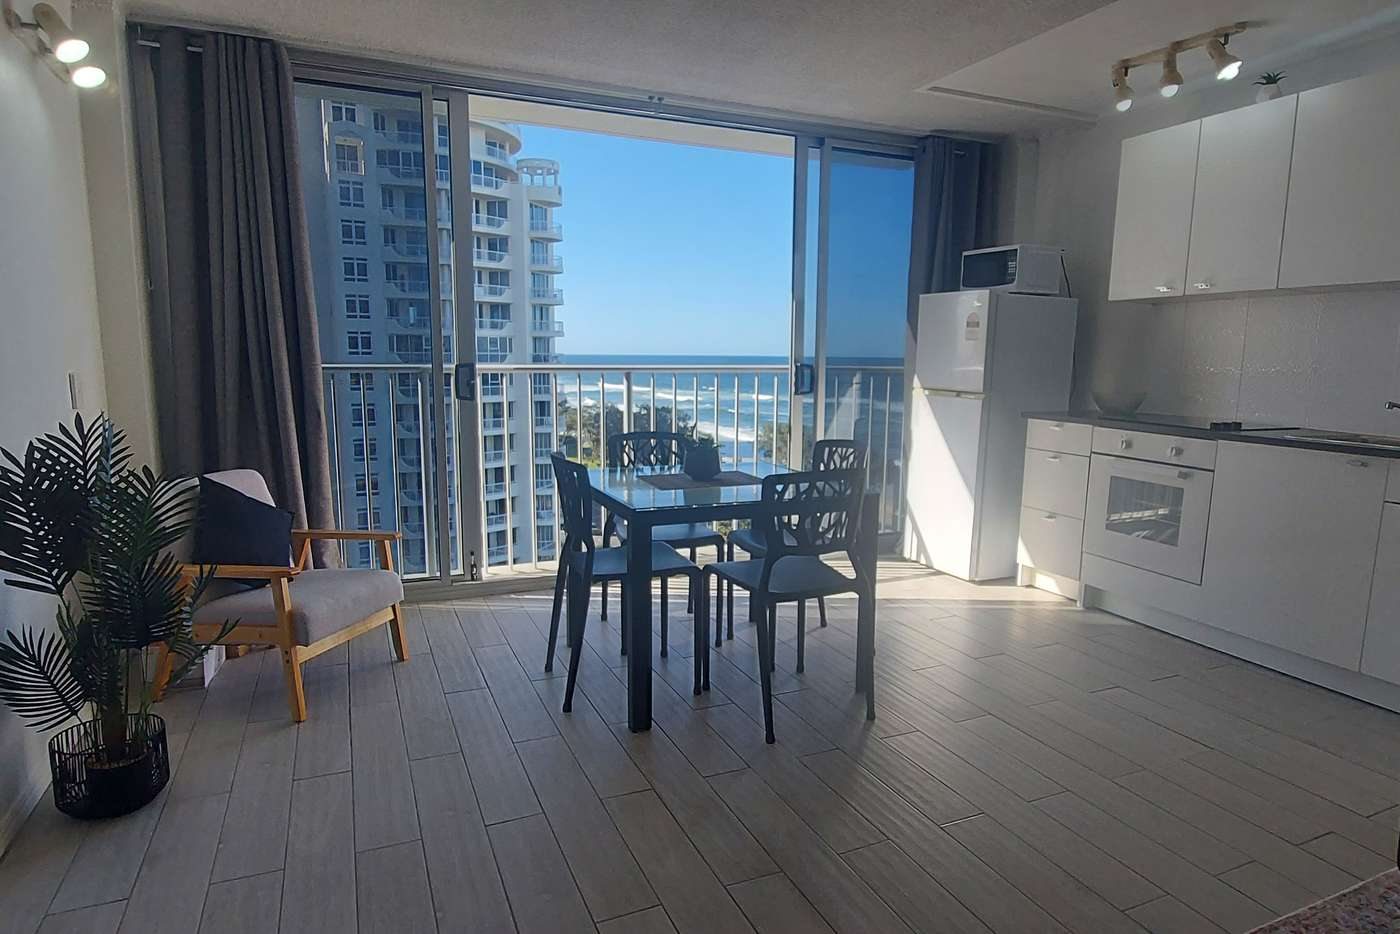 Main view of Homely house listing, 706/44-52 The Esplanade, Surfers Paradise QLD 4217